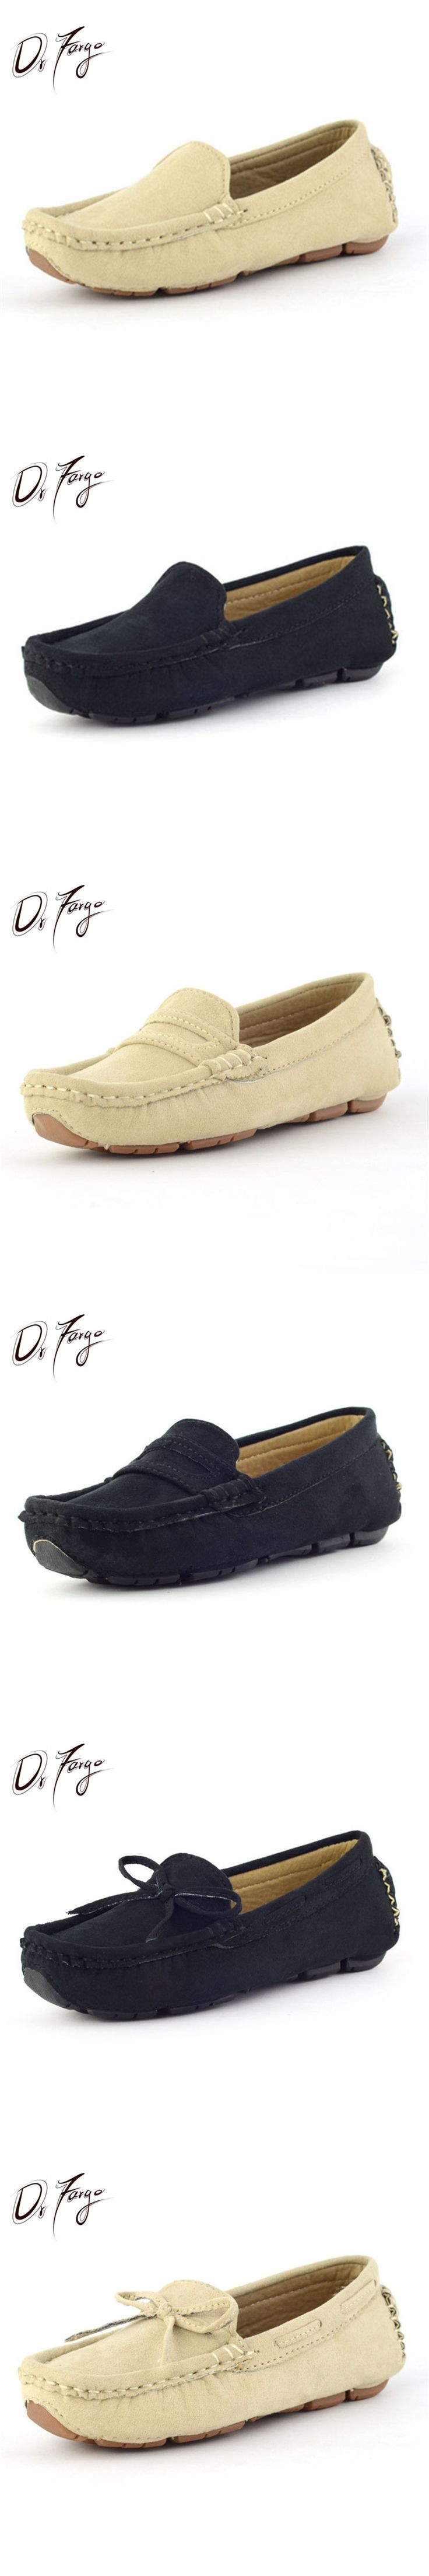 DRFARGO Hot sales Women Slip on Faux Suede Flats Lady's Moccasins Zapato Pregant Driving Shoes Casual Shoes34-43 Femme Chaussure